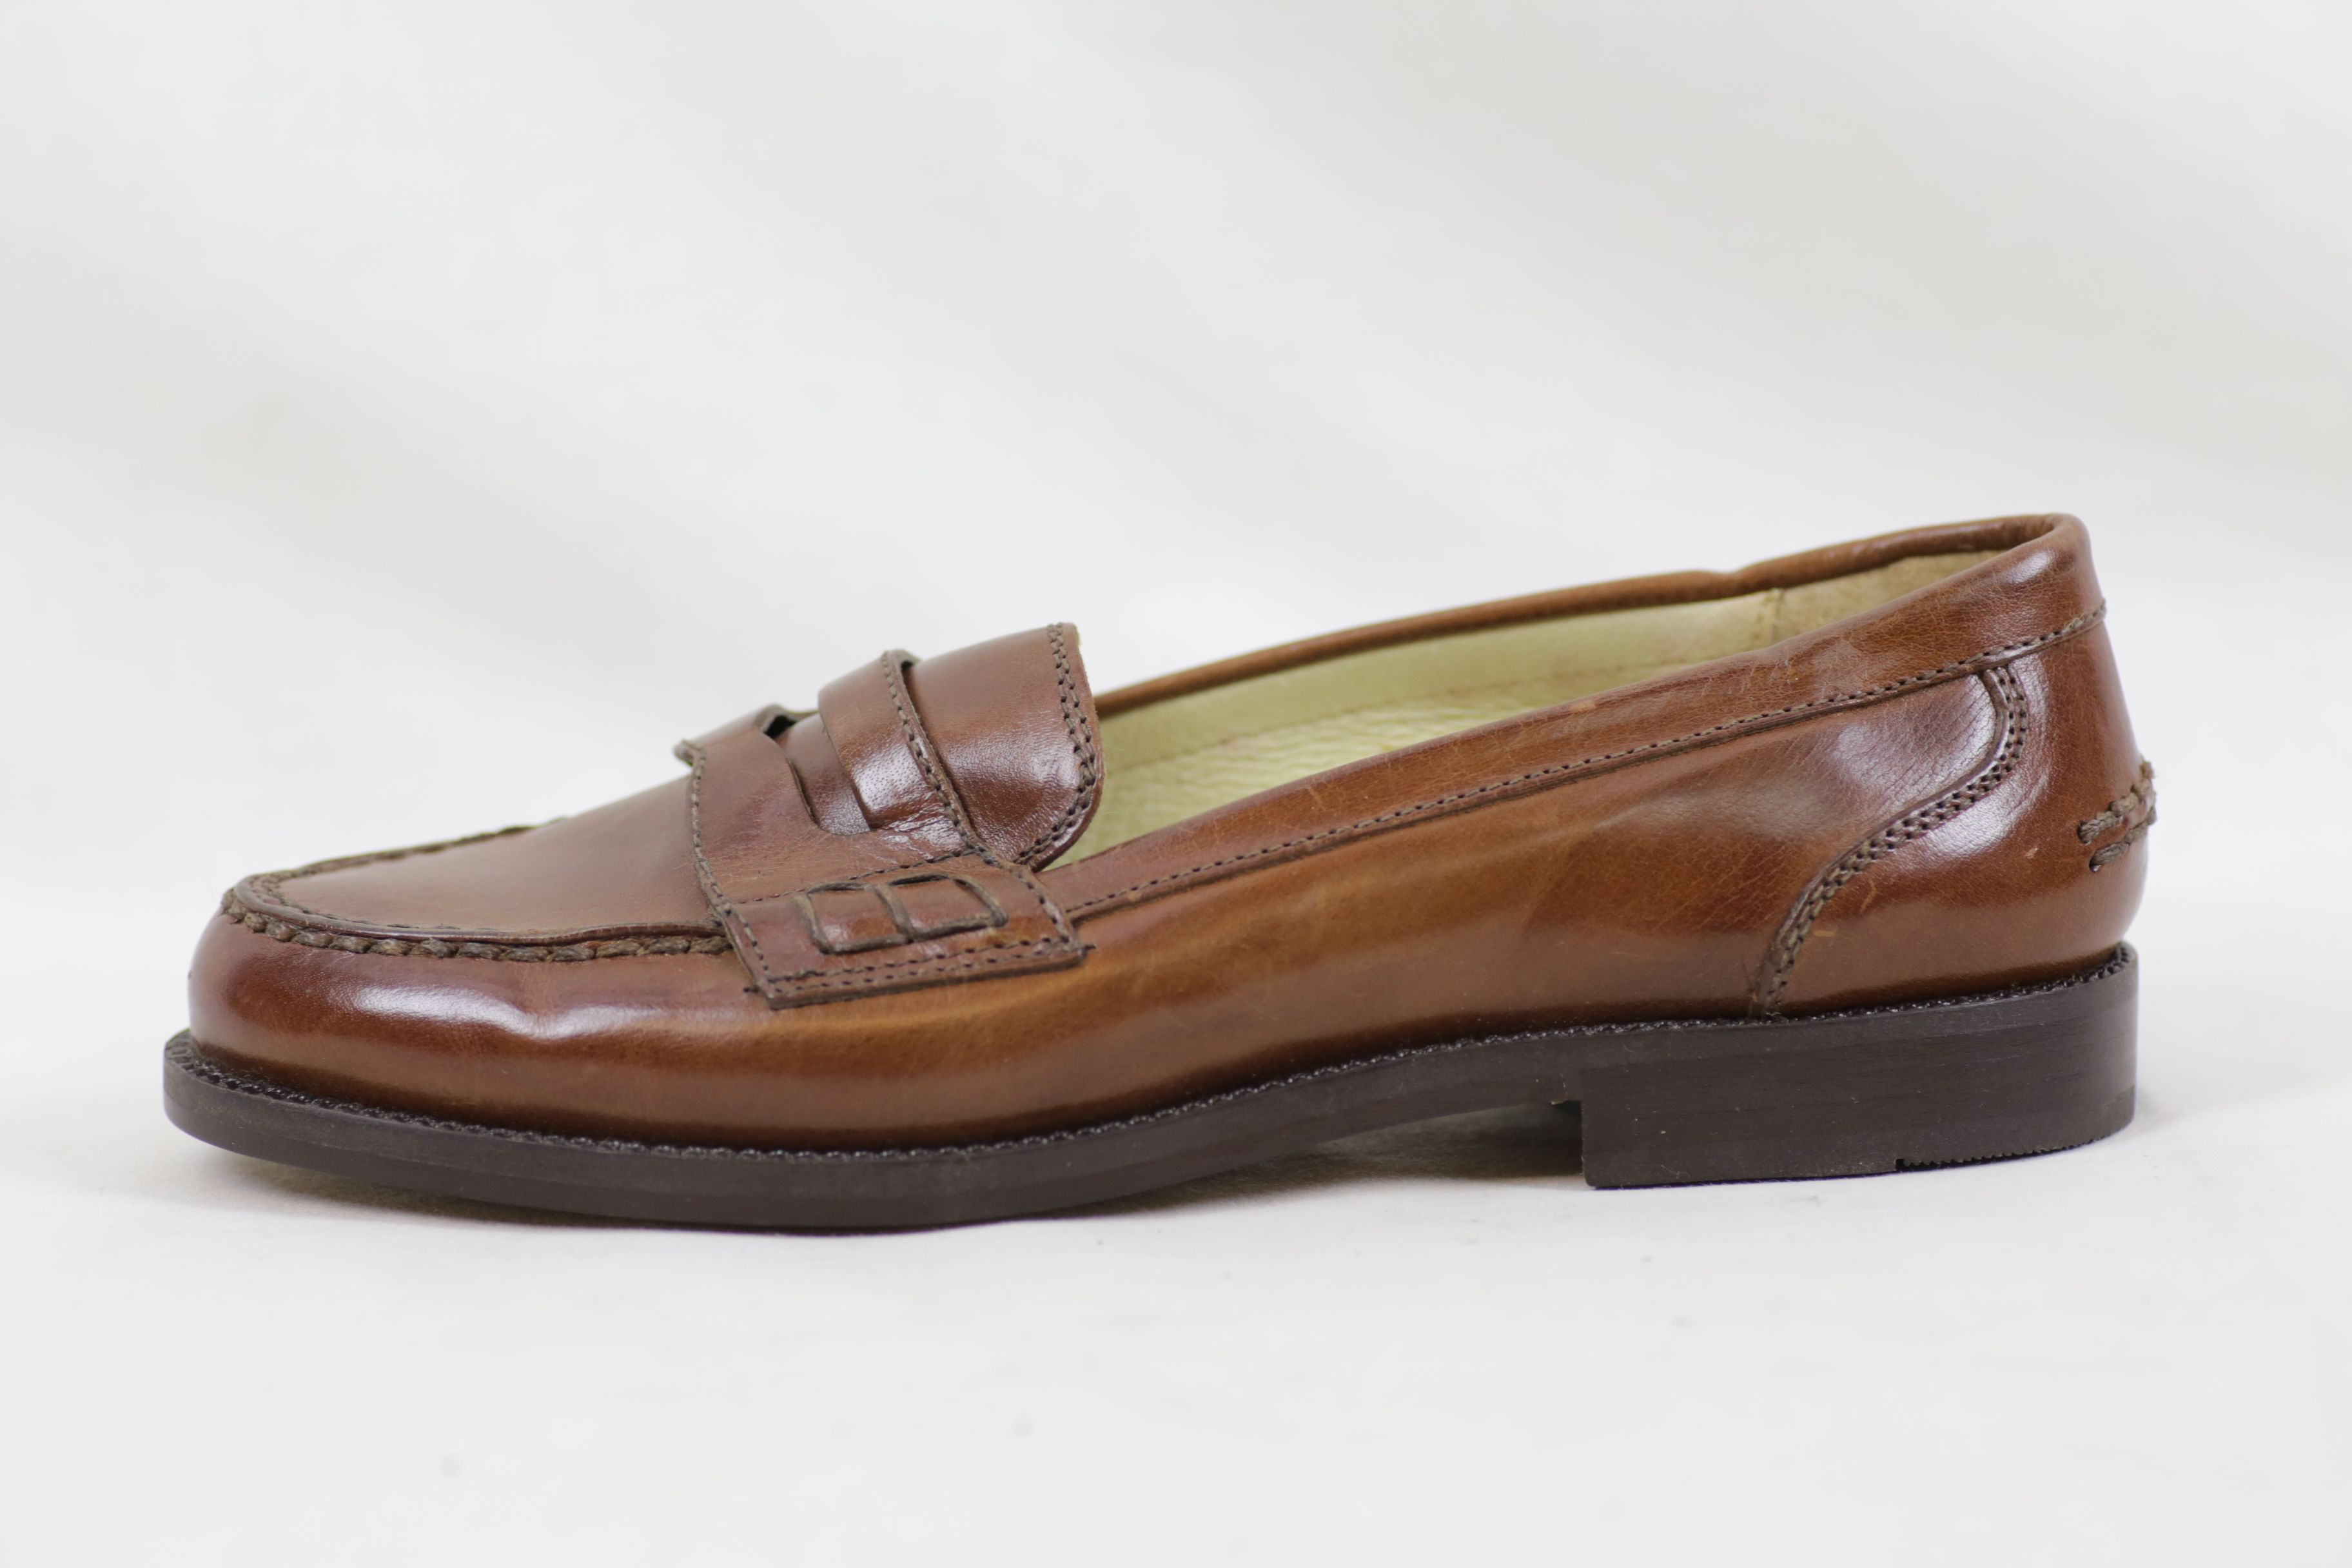 Bally Brim Classic Mid Brown Leather Shoes / Loafers - Size EU 36.5 UK 3.5 3